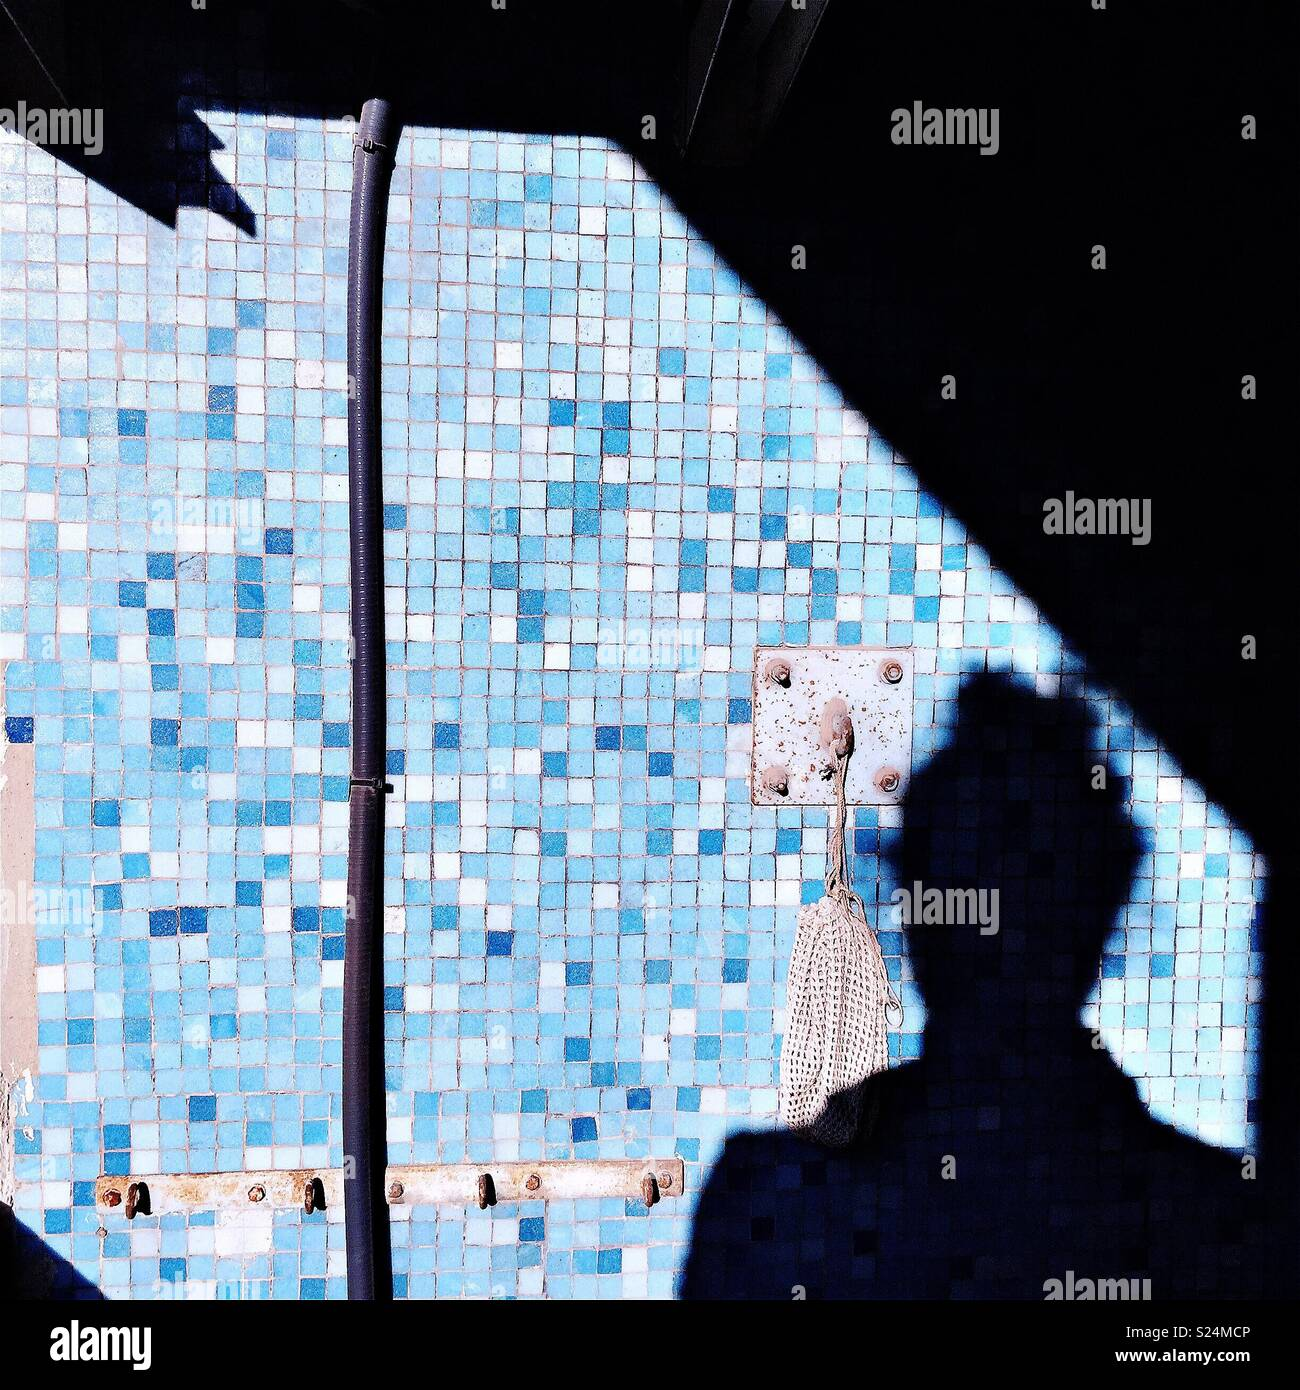 Silhouette of a man in a colored - Stock Image